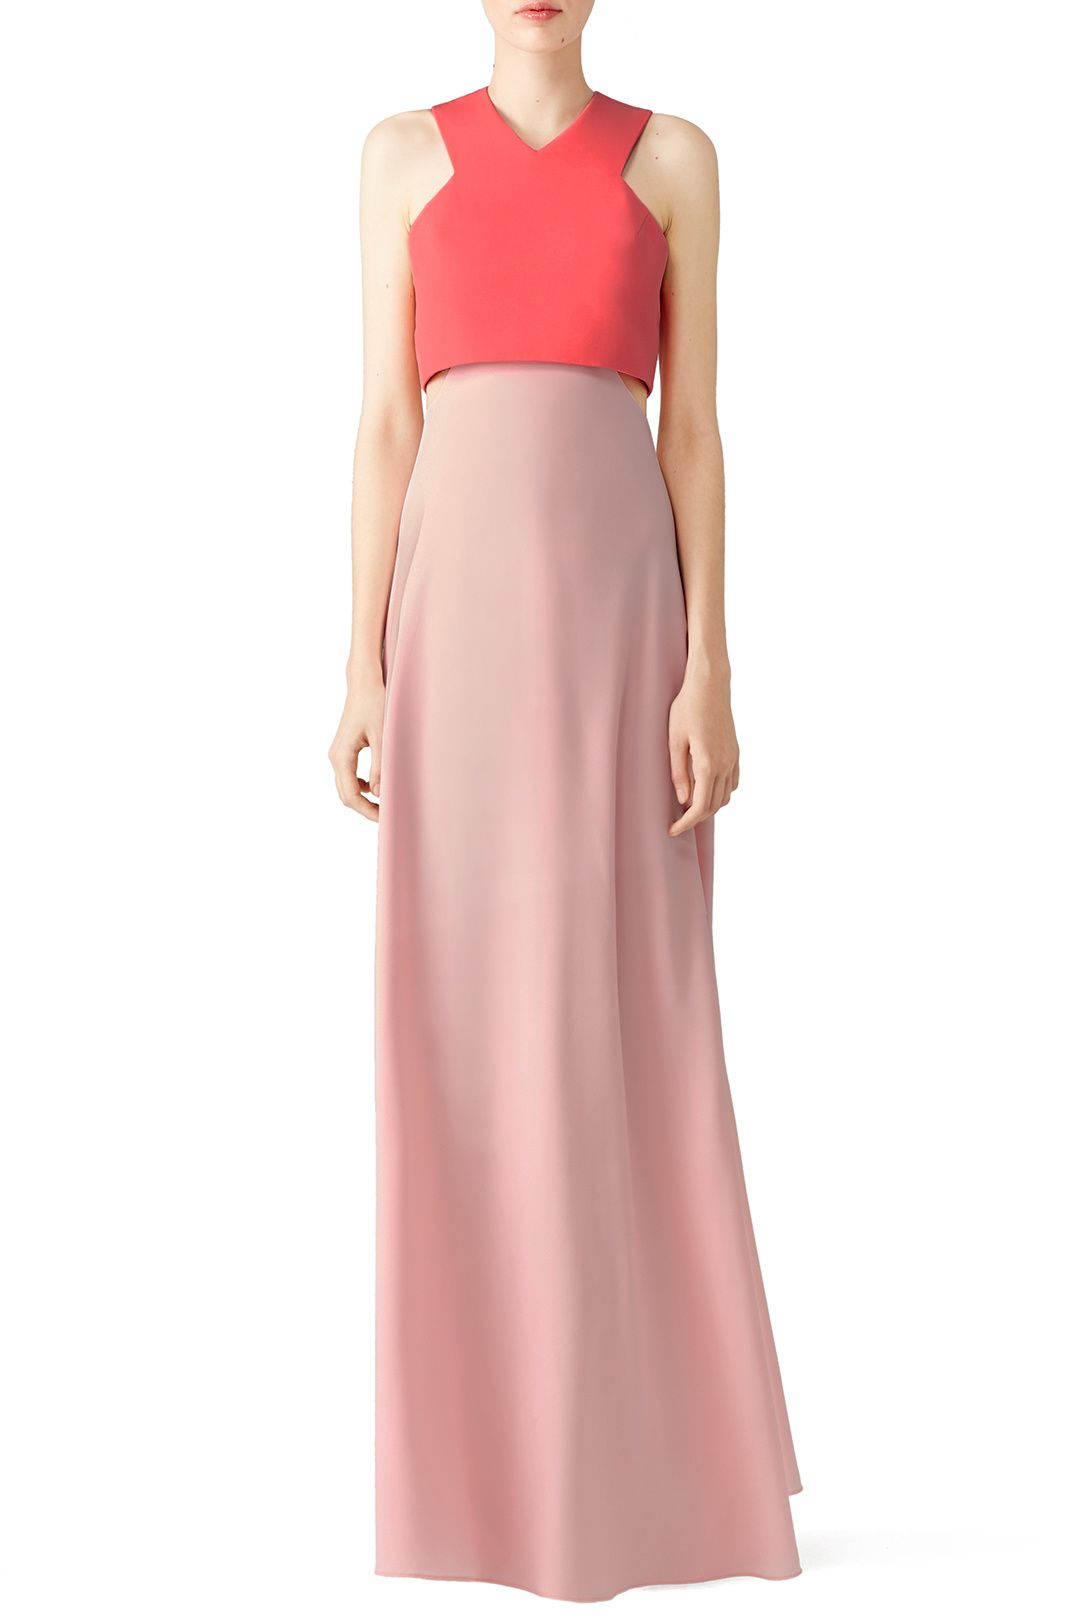 Rent Pink Two-Toned Popover Gown by Jill Jill Stuart for $70 only at ...